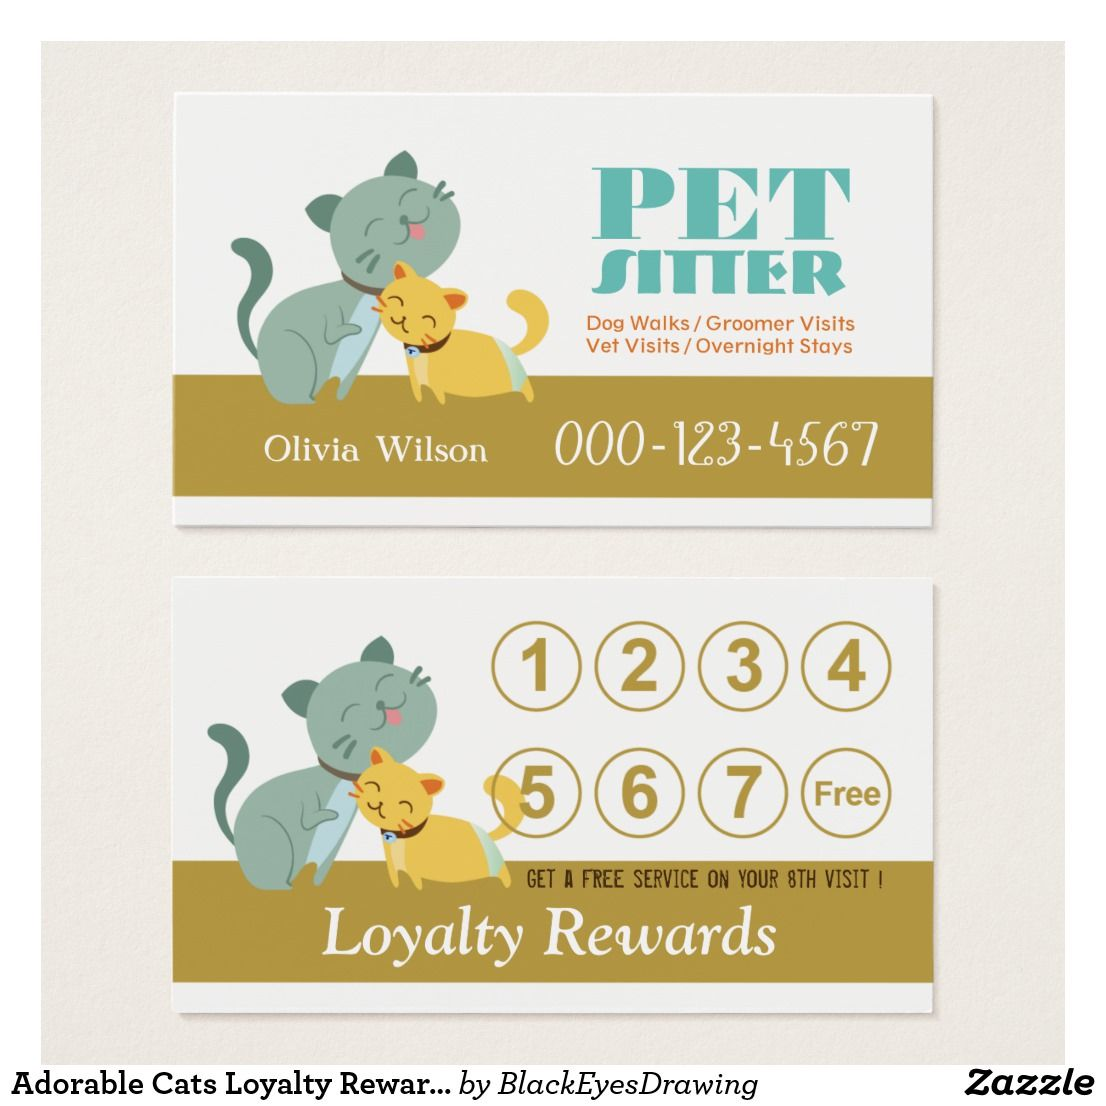 Adorable Cats Loyalty Rewards Pet Sitting Service Business Card ...